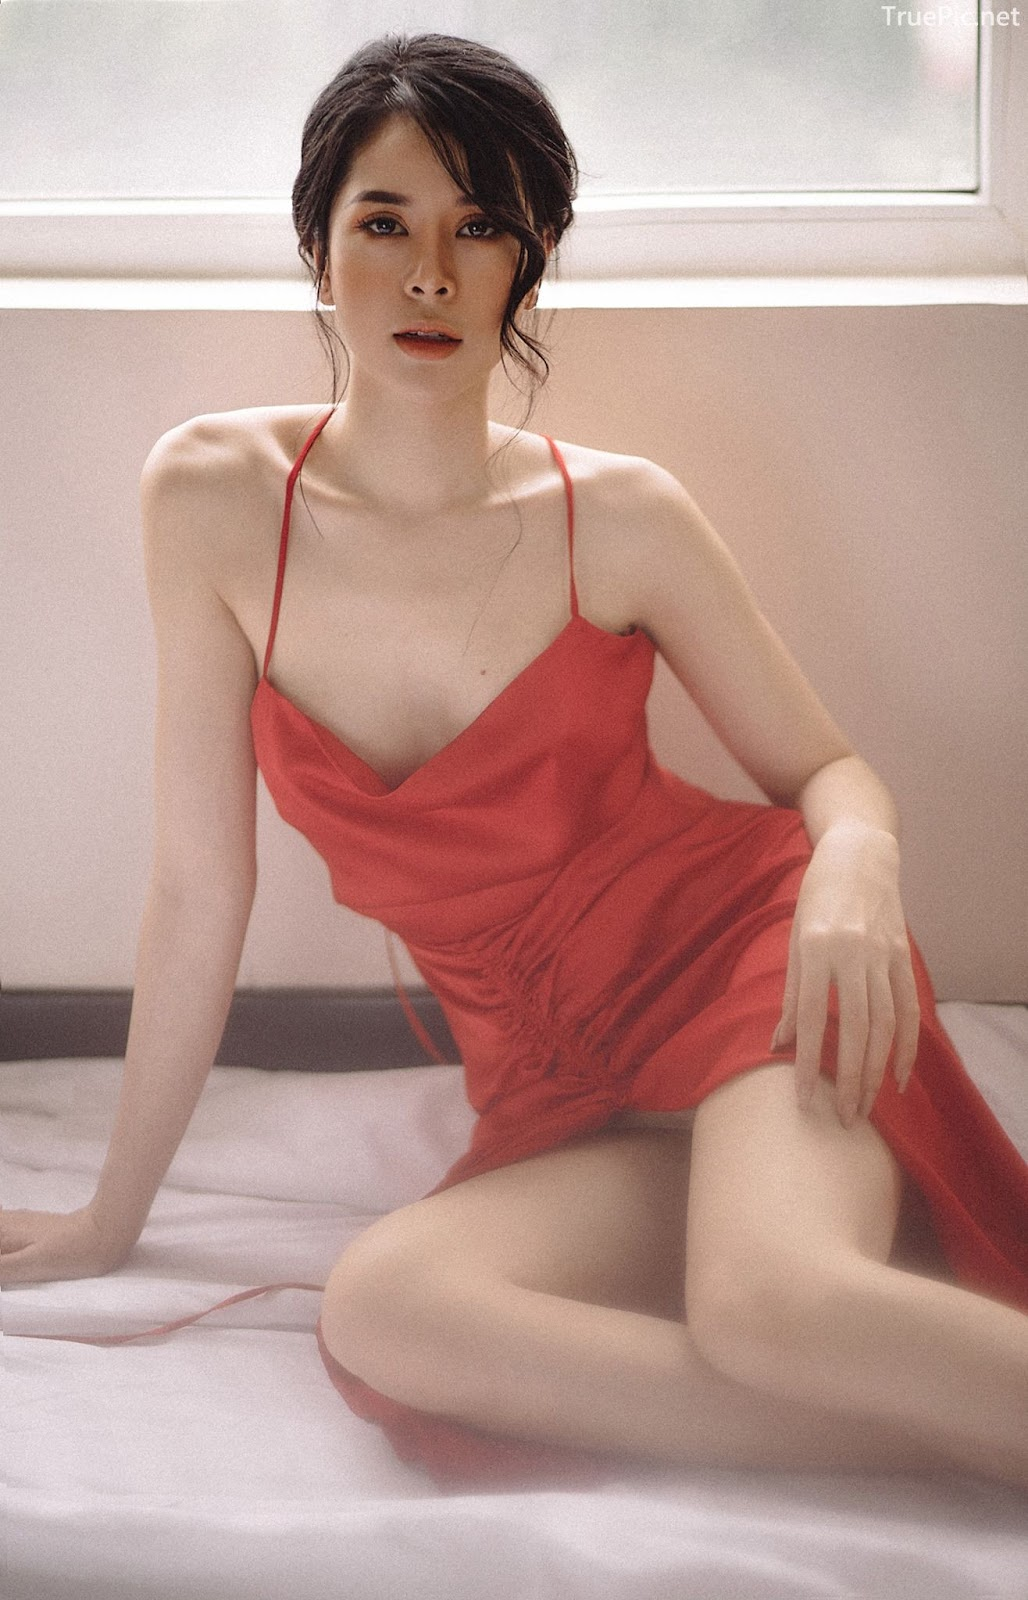 Vietnamese hot model - The beauty of Women with Red Camisole Dress - Photo by Linh Phan - Picture 4